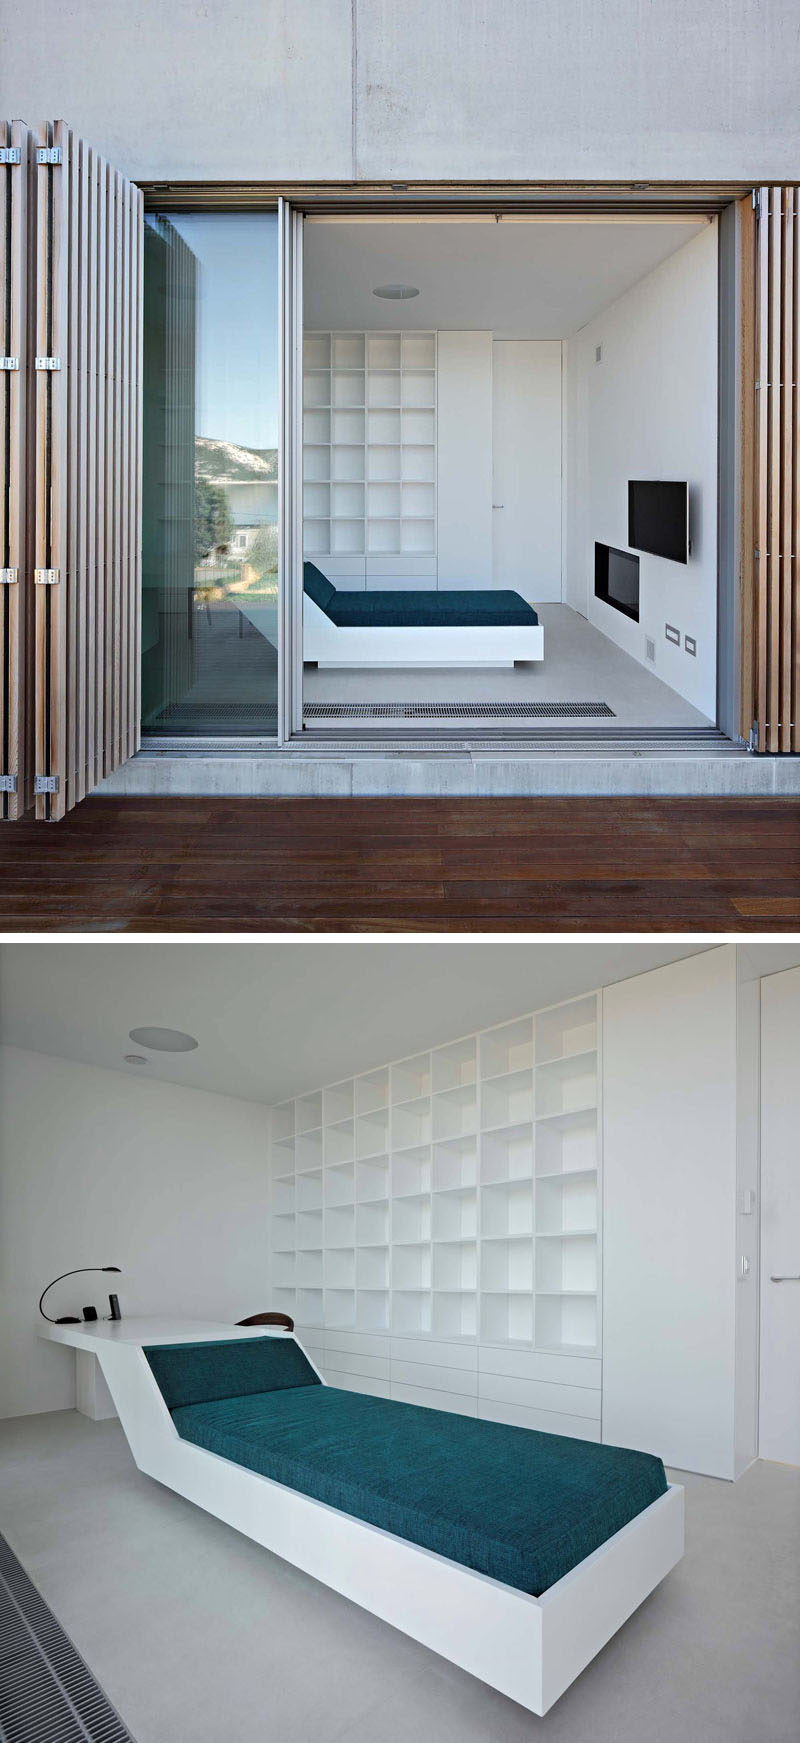 This modern home office can be accessed from the outside deck or from within the house. A custom furniture piece named nap'n'work was designed to have dual functions that include a desk to work on and a day bed to nap on. #Furniture #DayBed #HomeOffice #Desk #Design #InteriorDesign